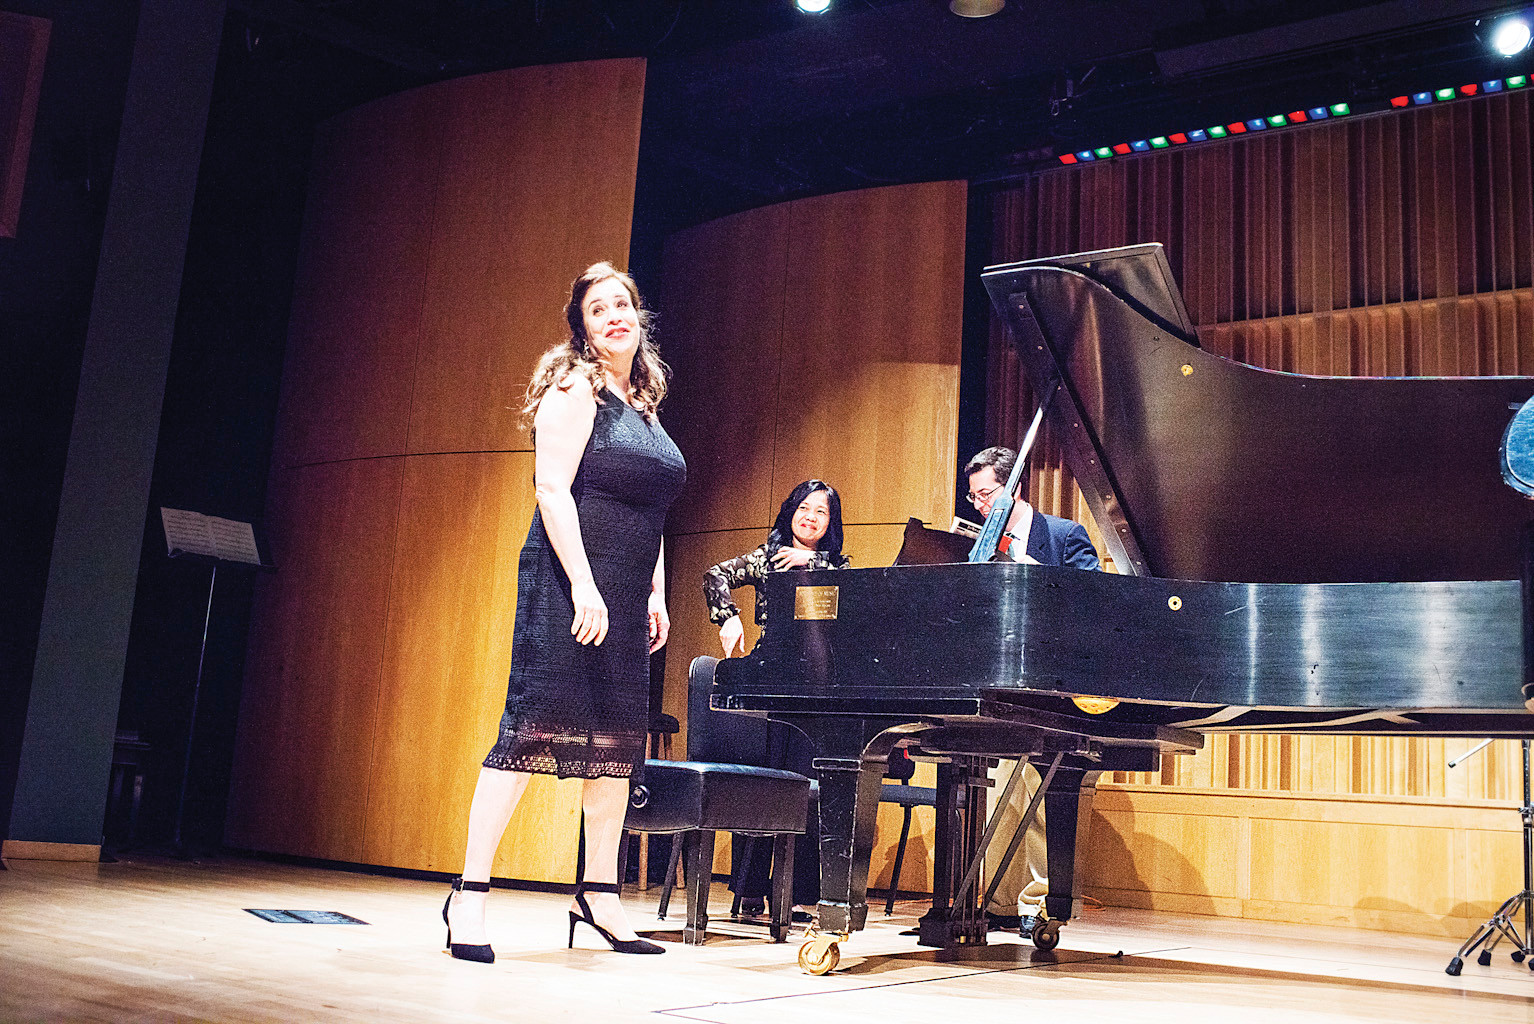 Pianist Claudia Knafo, a Horace Mann graduate, performs in the school's auditorium during a Hilltop Cares charity event supporting victims of sexual abuse at the school, on April 30.